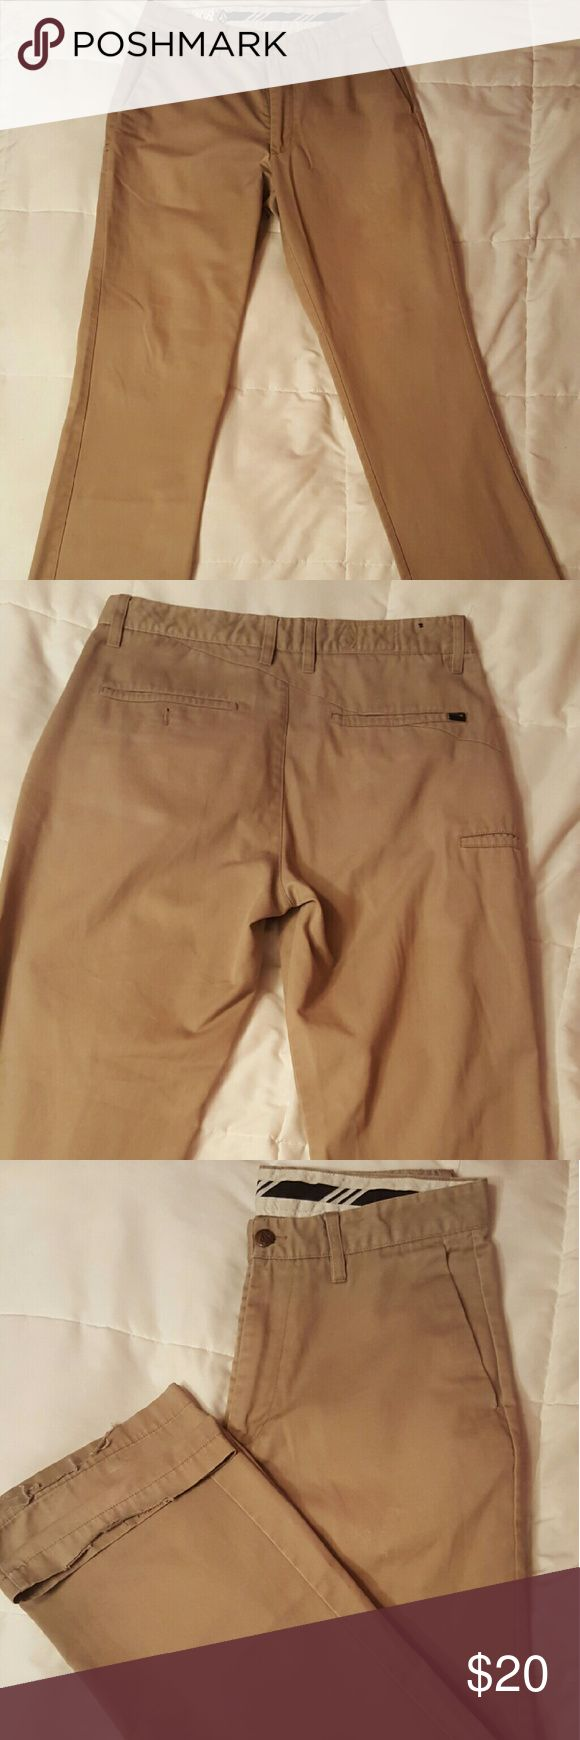 PRICE DROP! Men's Khaki pants 32x30 PRICE DROP!! Men's Volcom Khaki pants. Good condition. 32x30. Open to offers!! Volcom Pants Chinos & Khakis